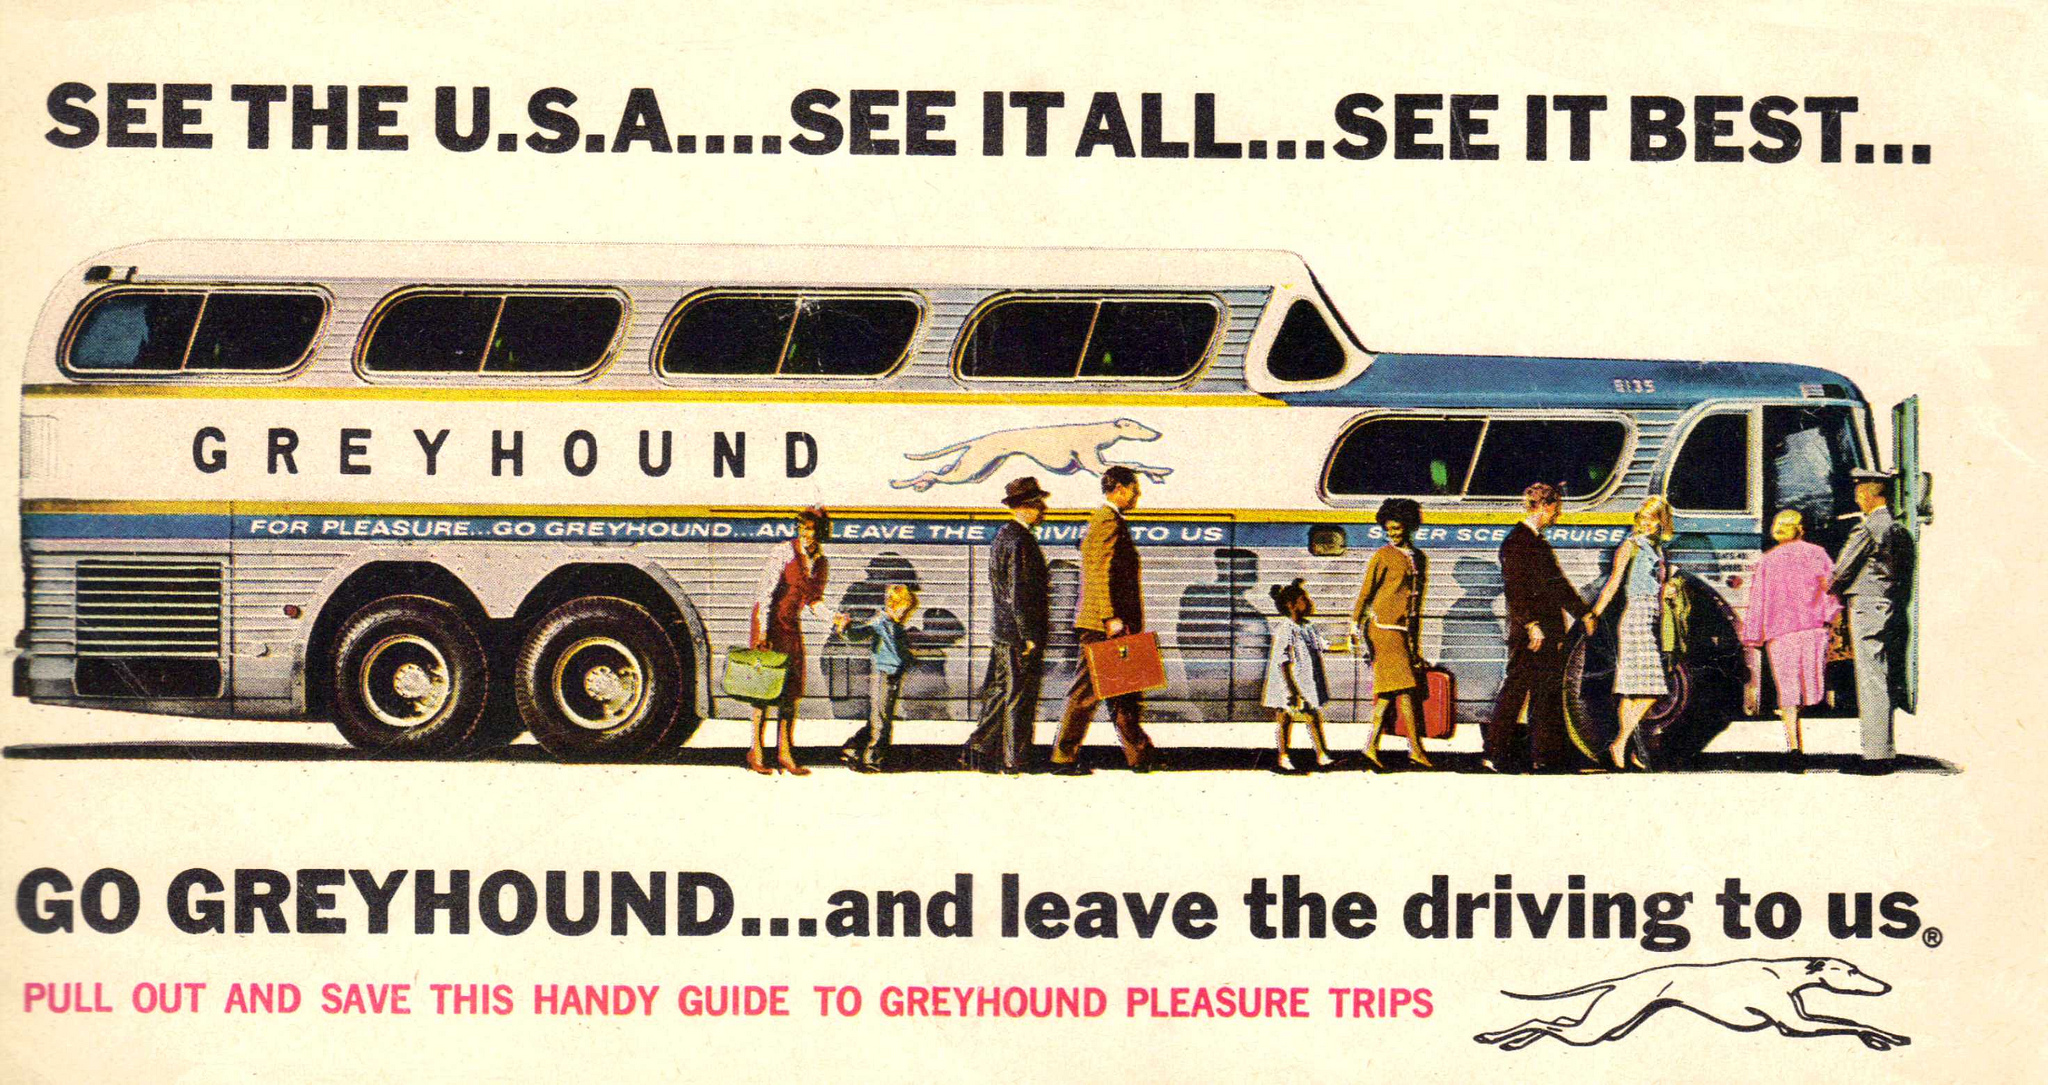 Greyhound Bus Ad - Flashbak